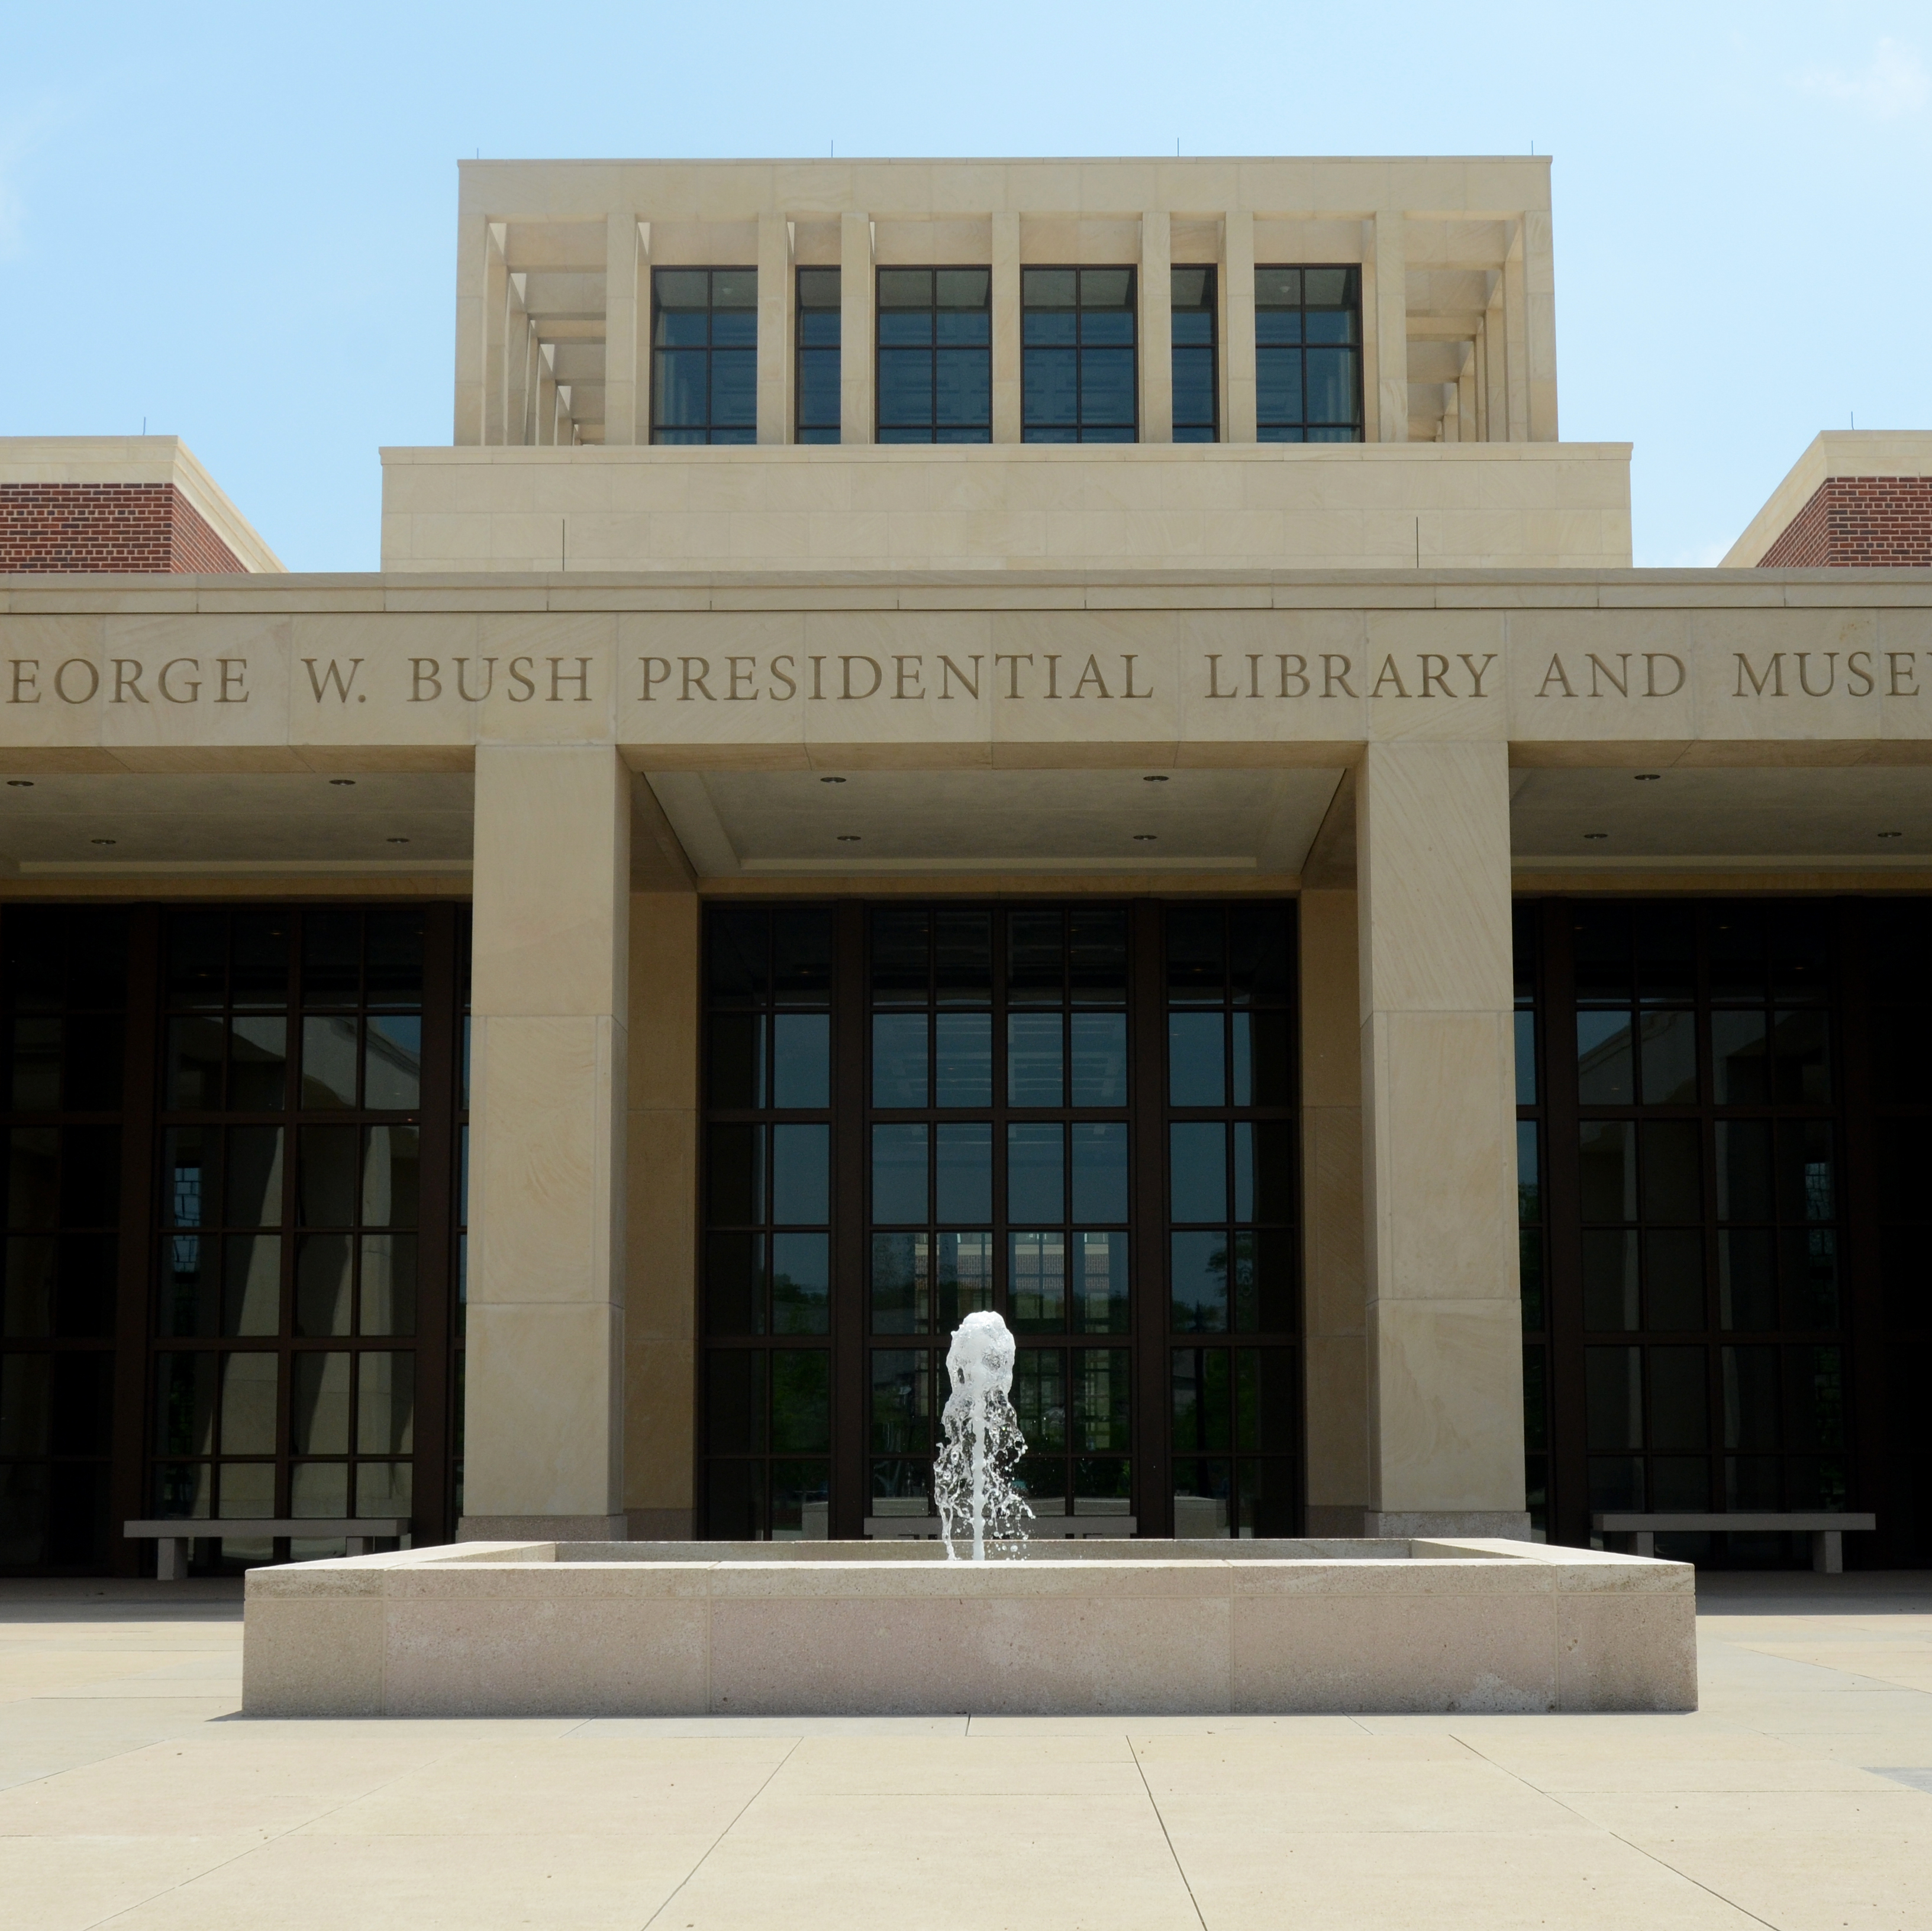 The George W. Bush Presidential Library and Museum in Dallas uses news clips, interactive screens and artifacts to tell the story of Bush's eight years in office.